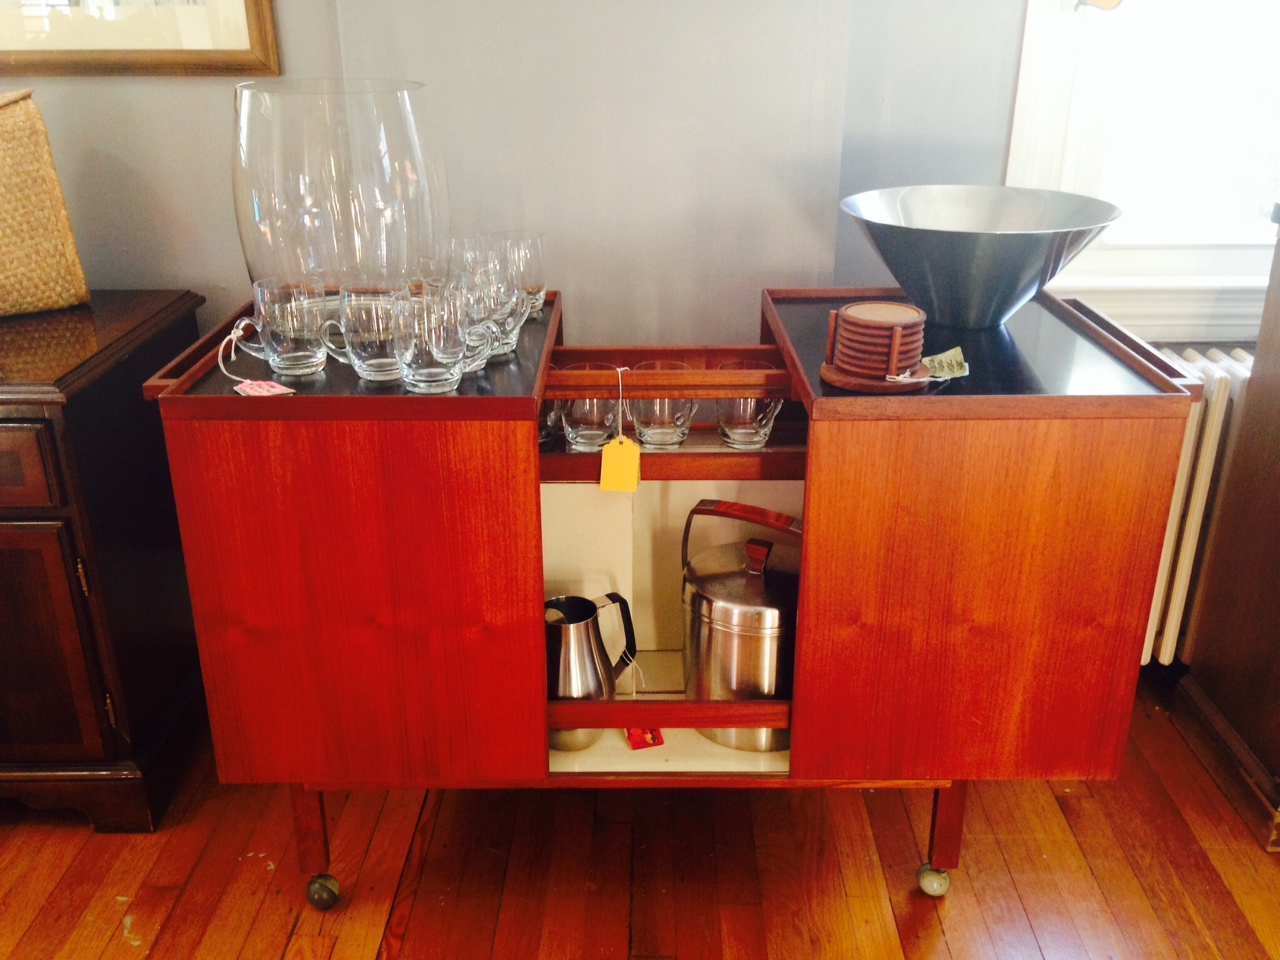 great mid century modern entertainment bar from our partners Barefoot Dwelling.